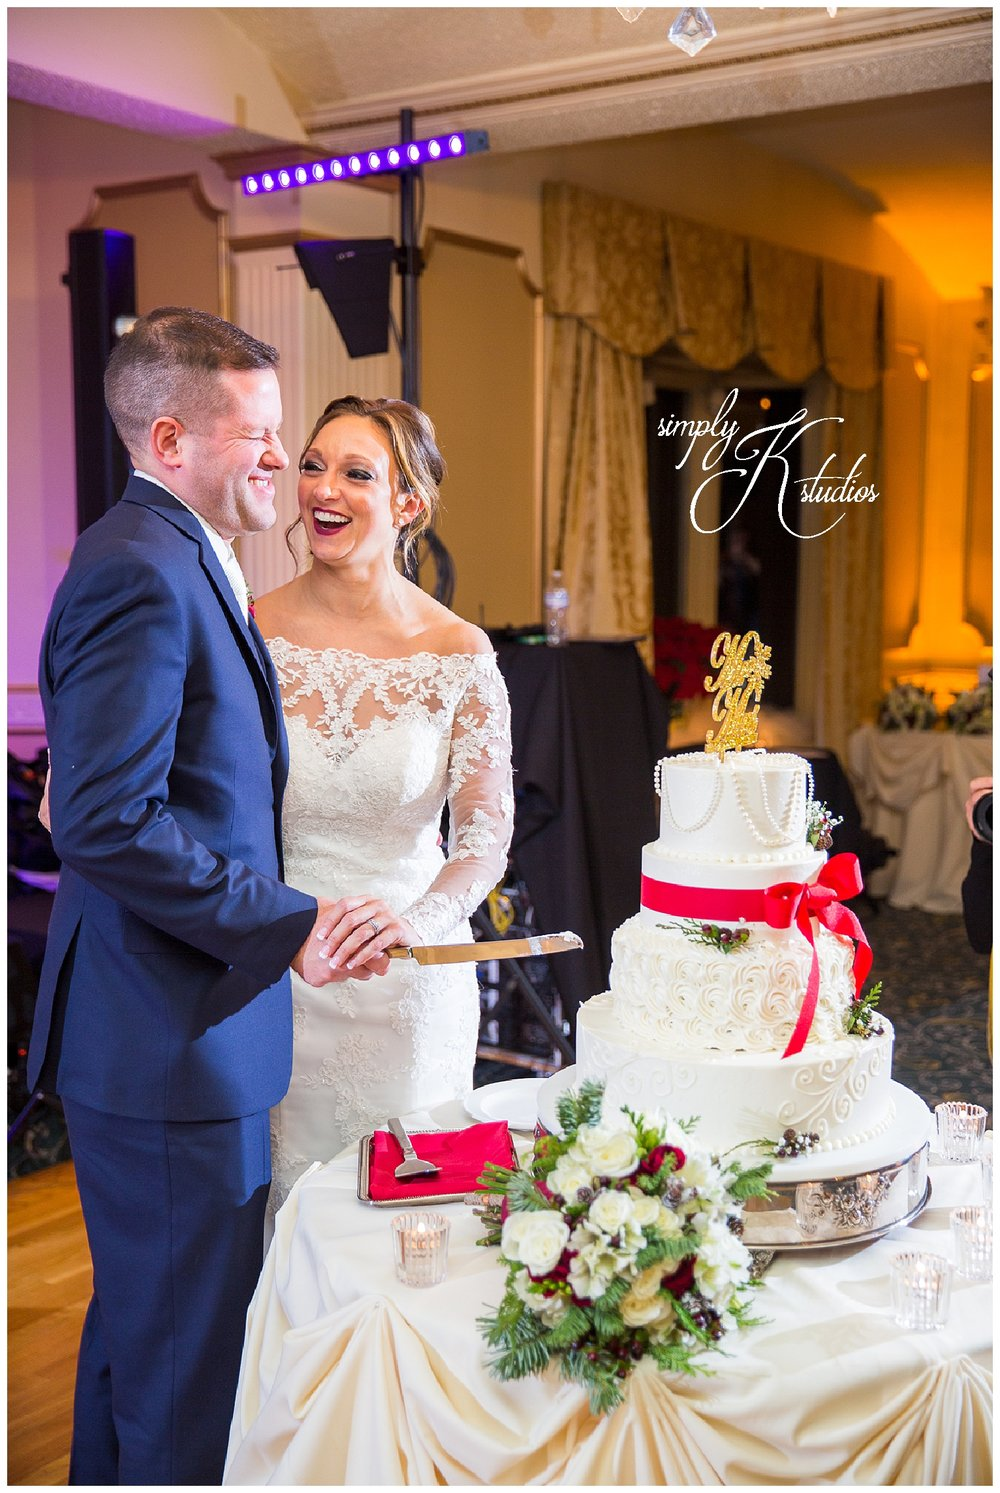 98 Fox Hill Inn Wedding Cake.jpg